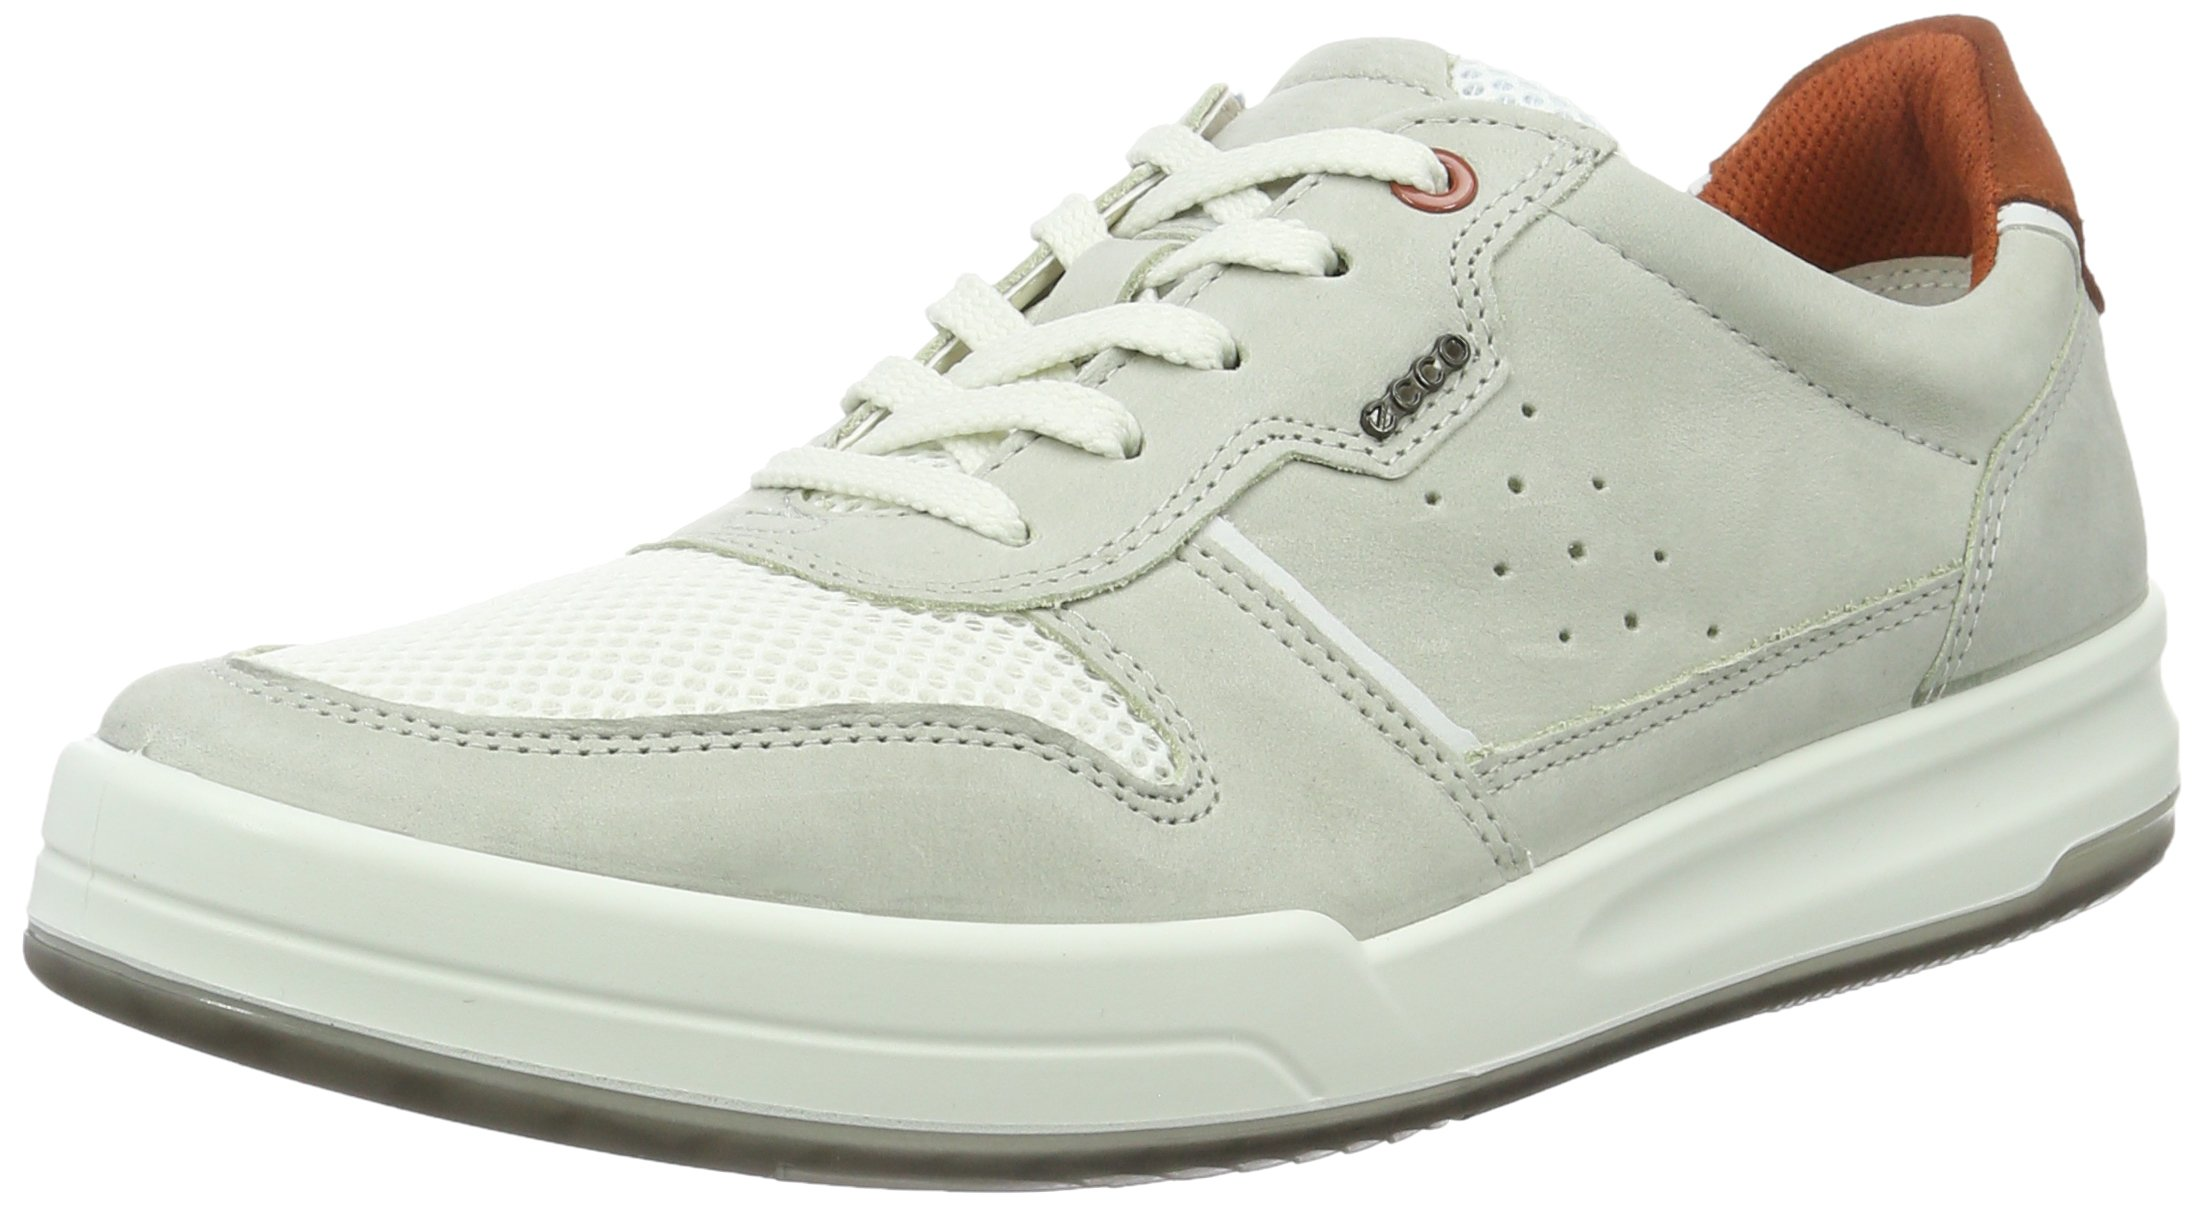 ECCO Men's Jack Summer Fashion Sneaker, Wild Dove/White, 43 EU/9-9.5 M US